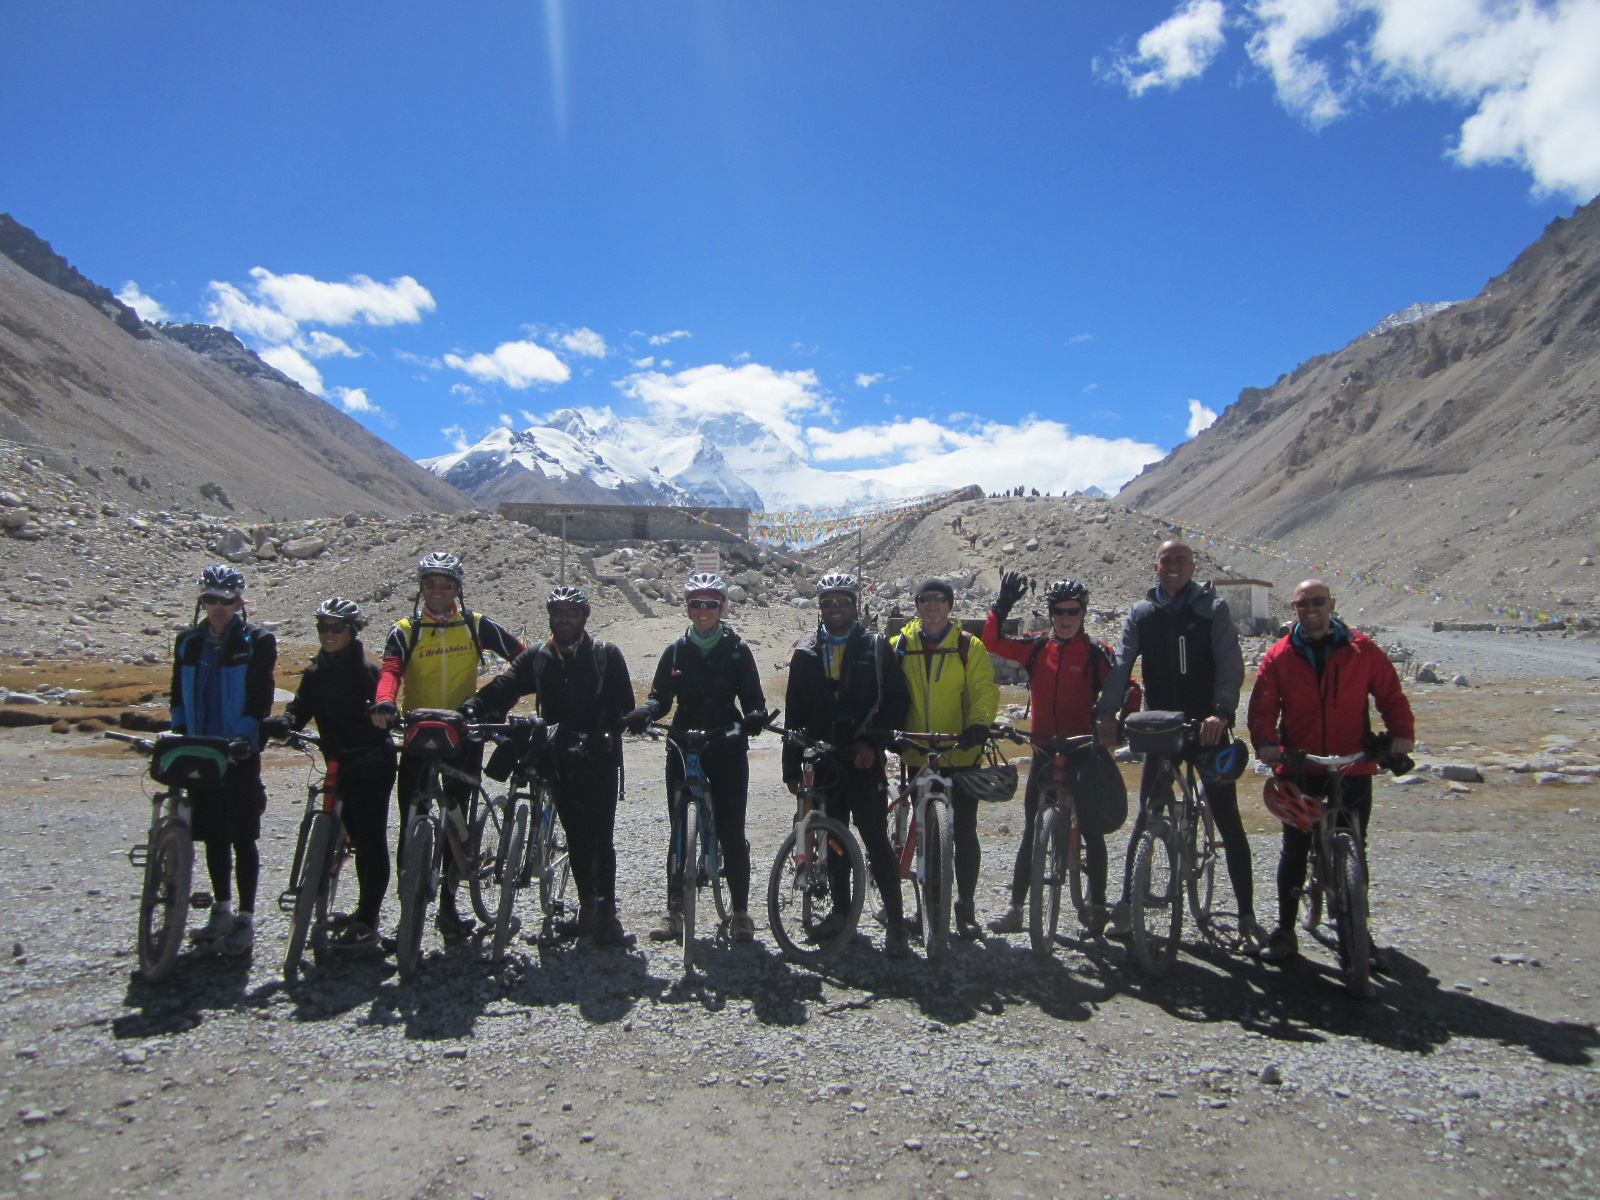 Cycling from Lhasa to Mount Everest base camp